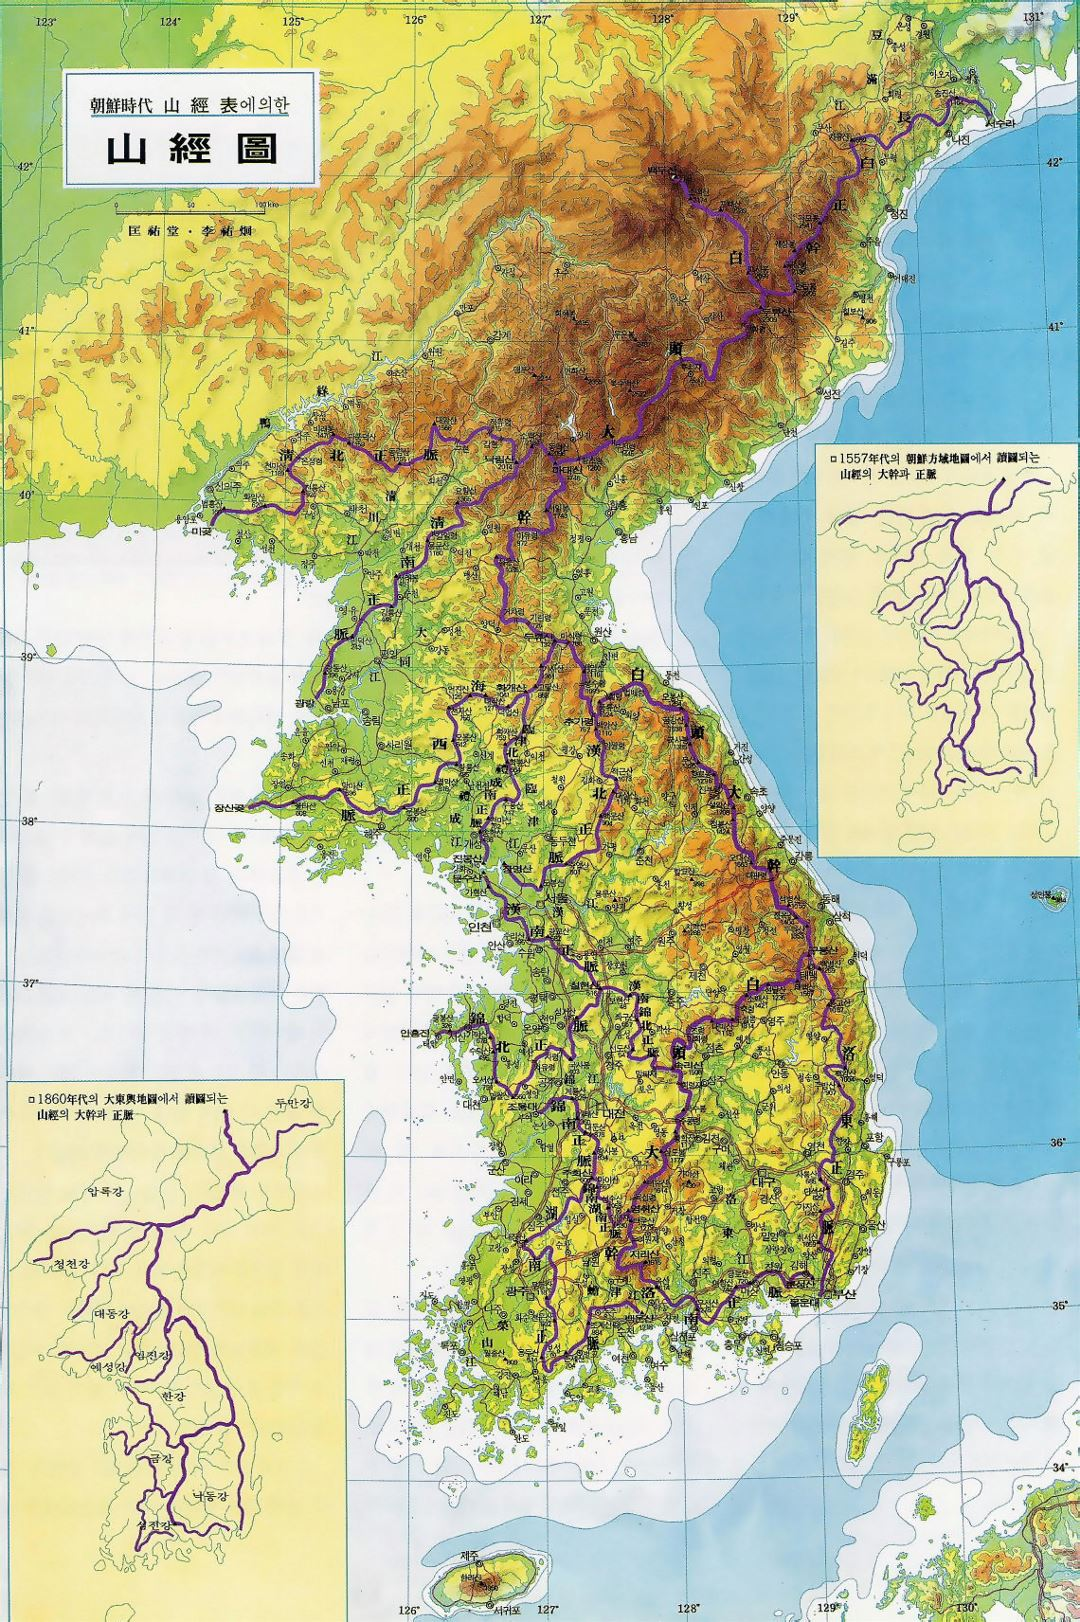 Detailed elevation map of Korean Peninsula with roads